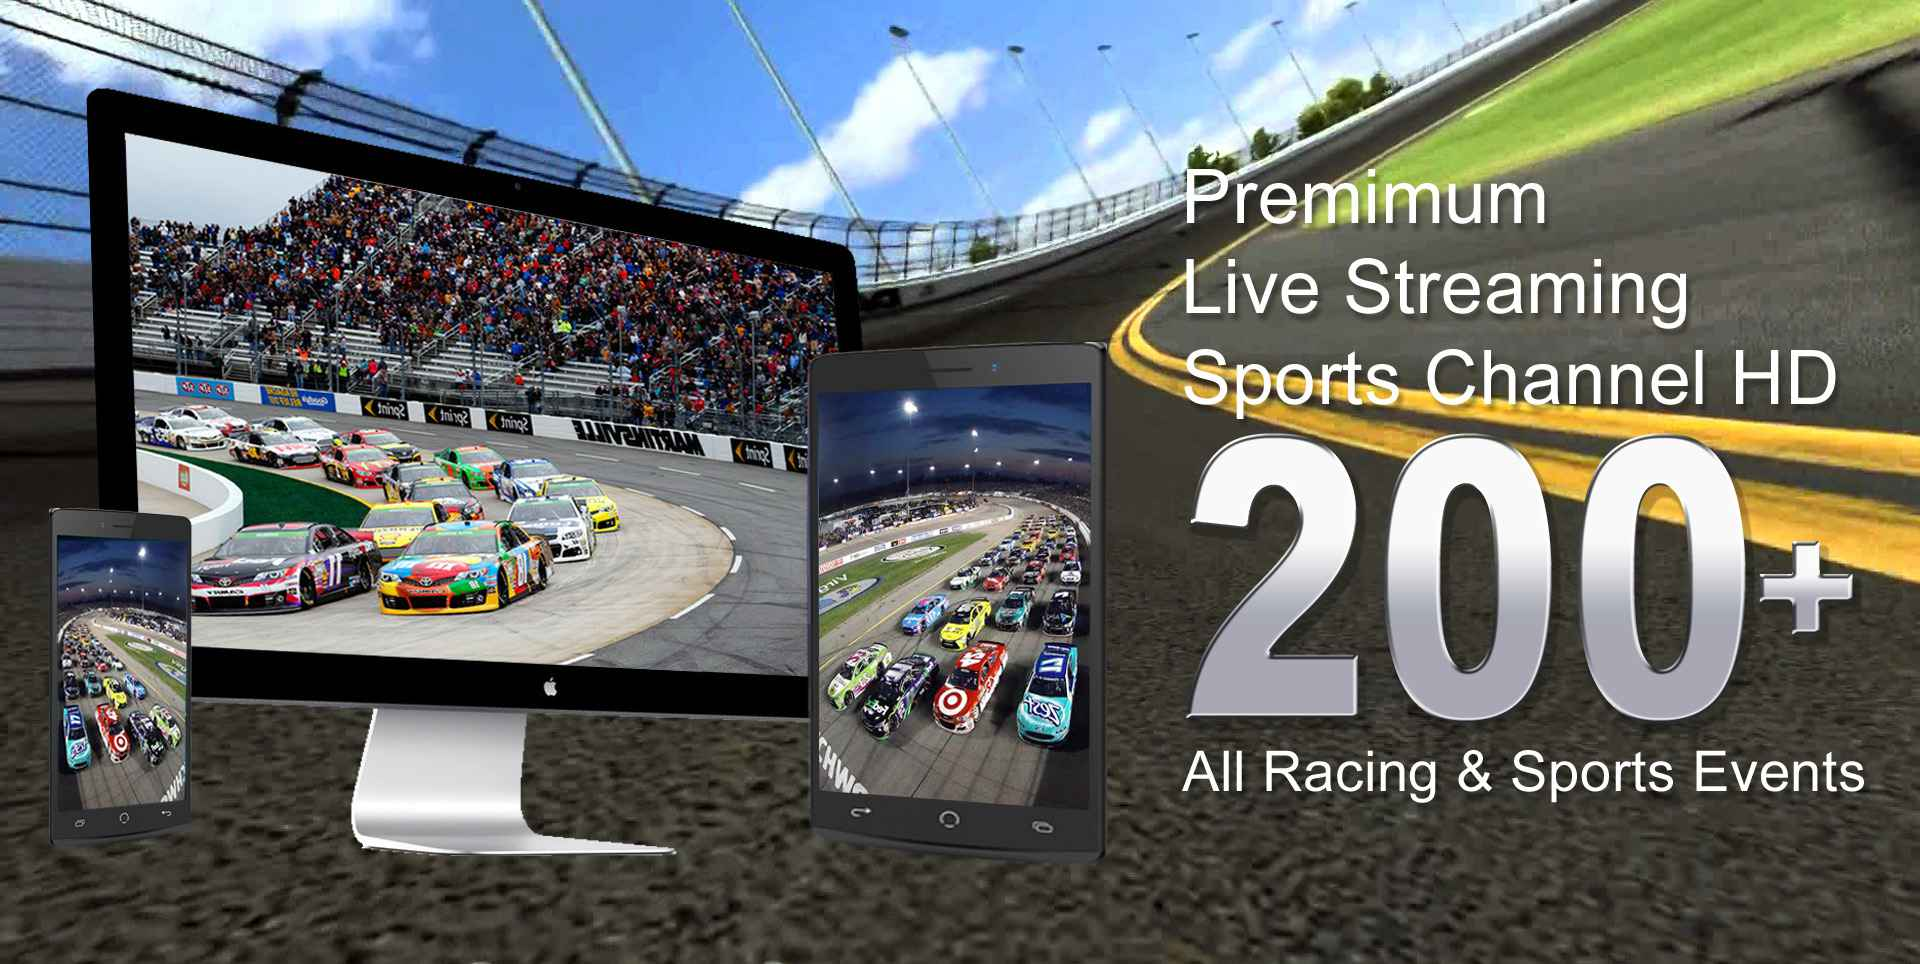 2017-monster-energy-open-nascar-live